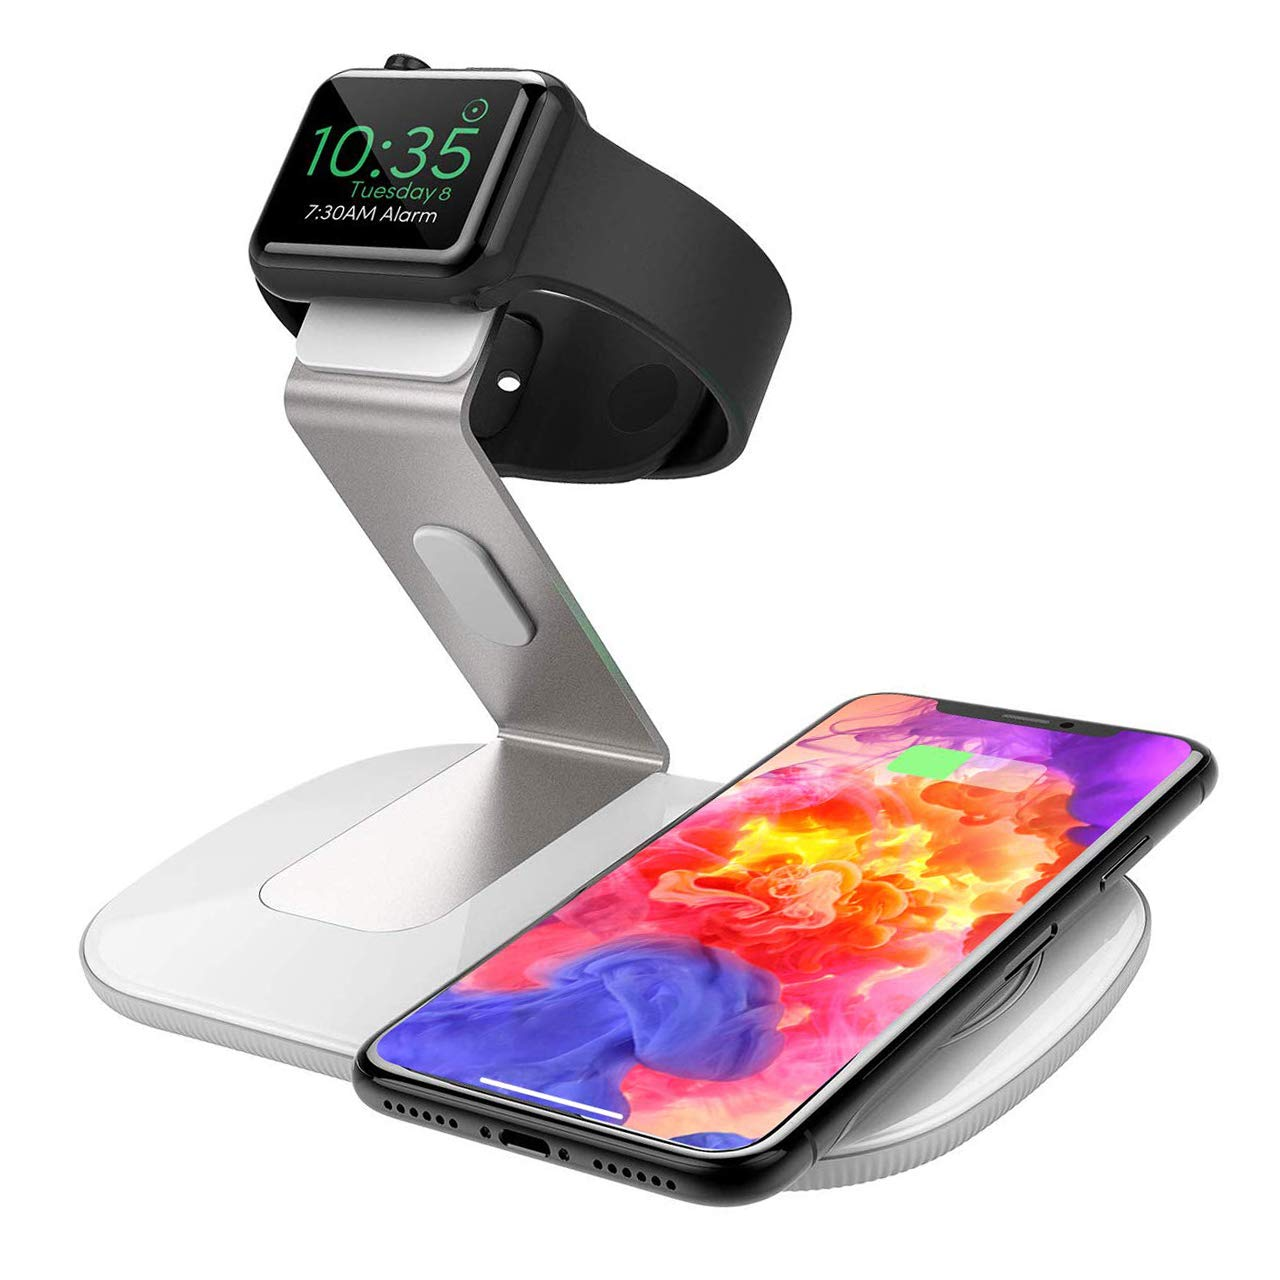 Seneo Fast Wireless Charger, 2 in 1 Wireless Charger für 12,99€